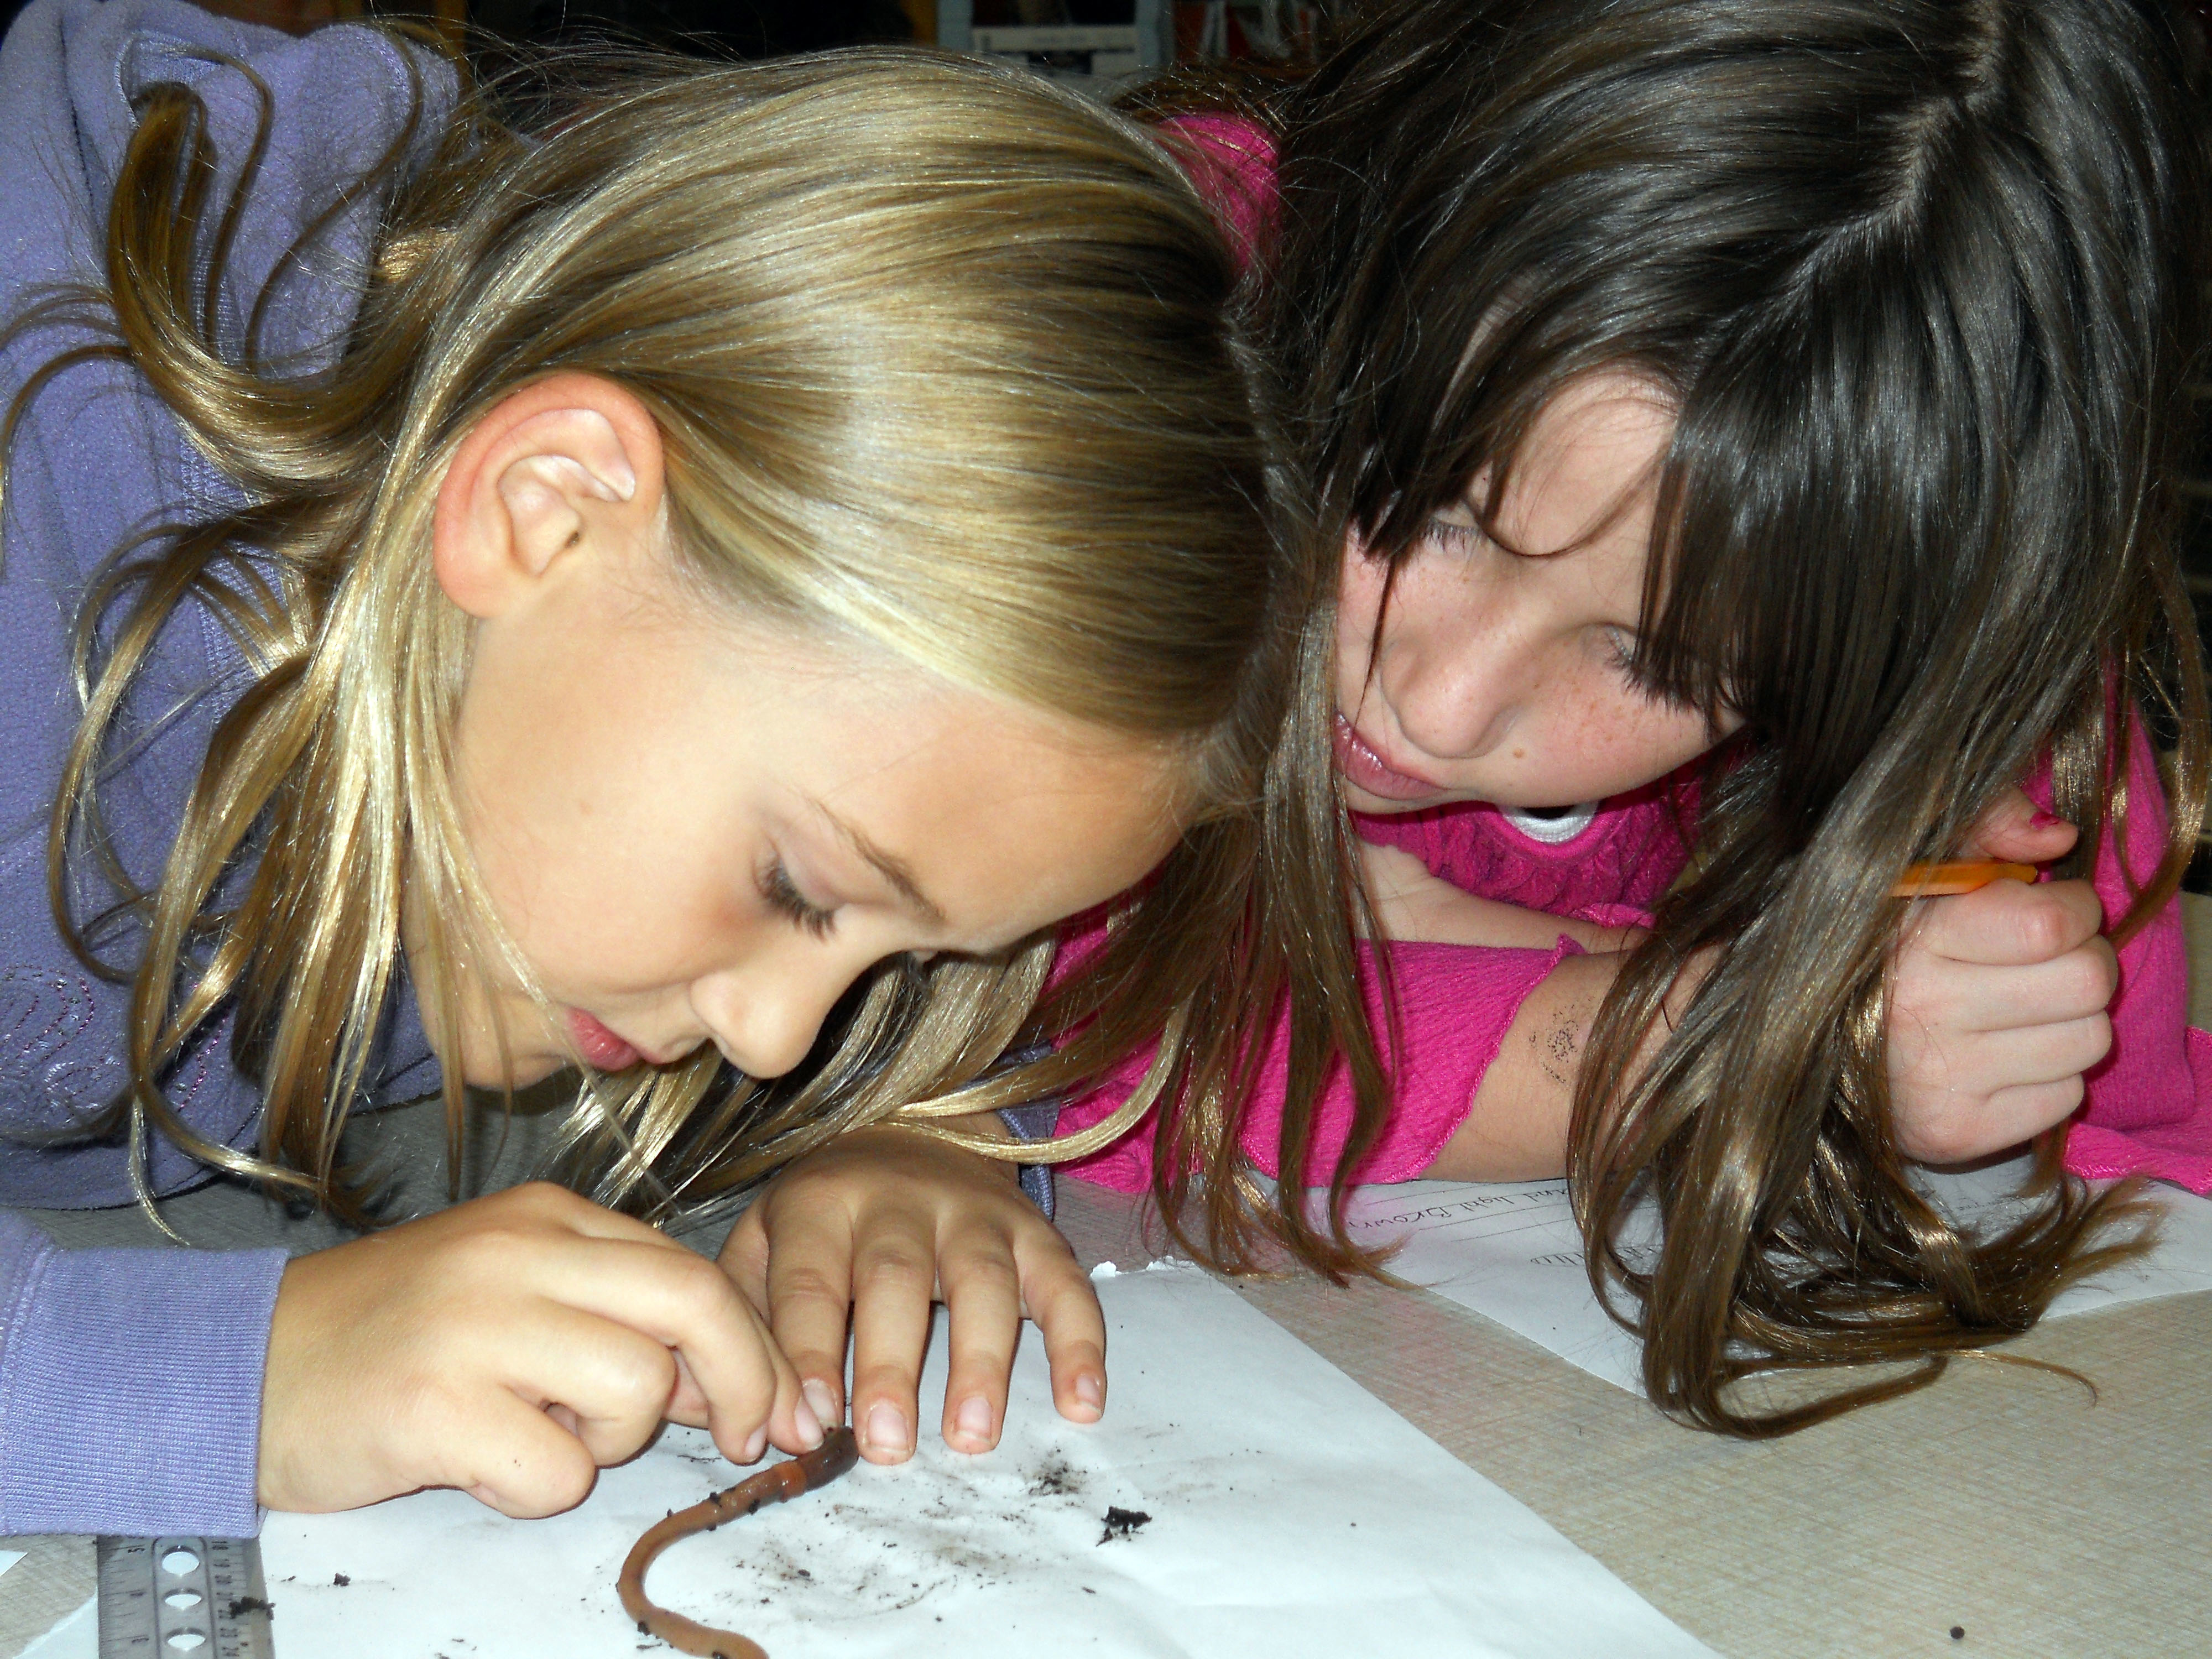 Girls Dissecting Worms